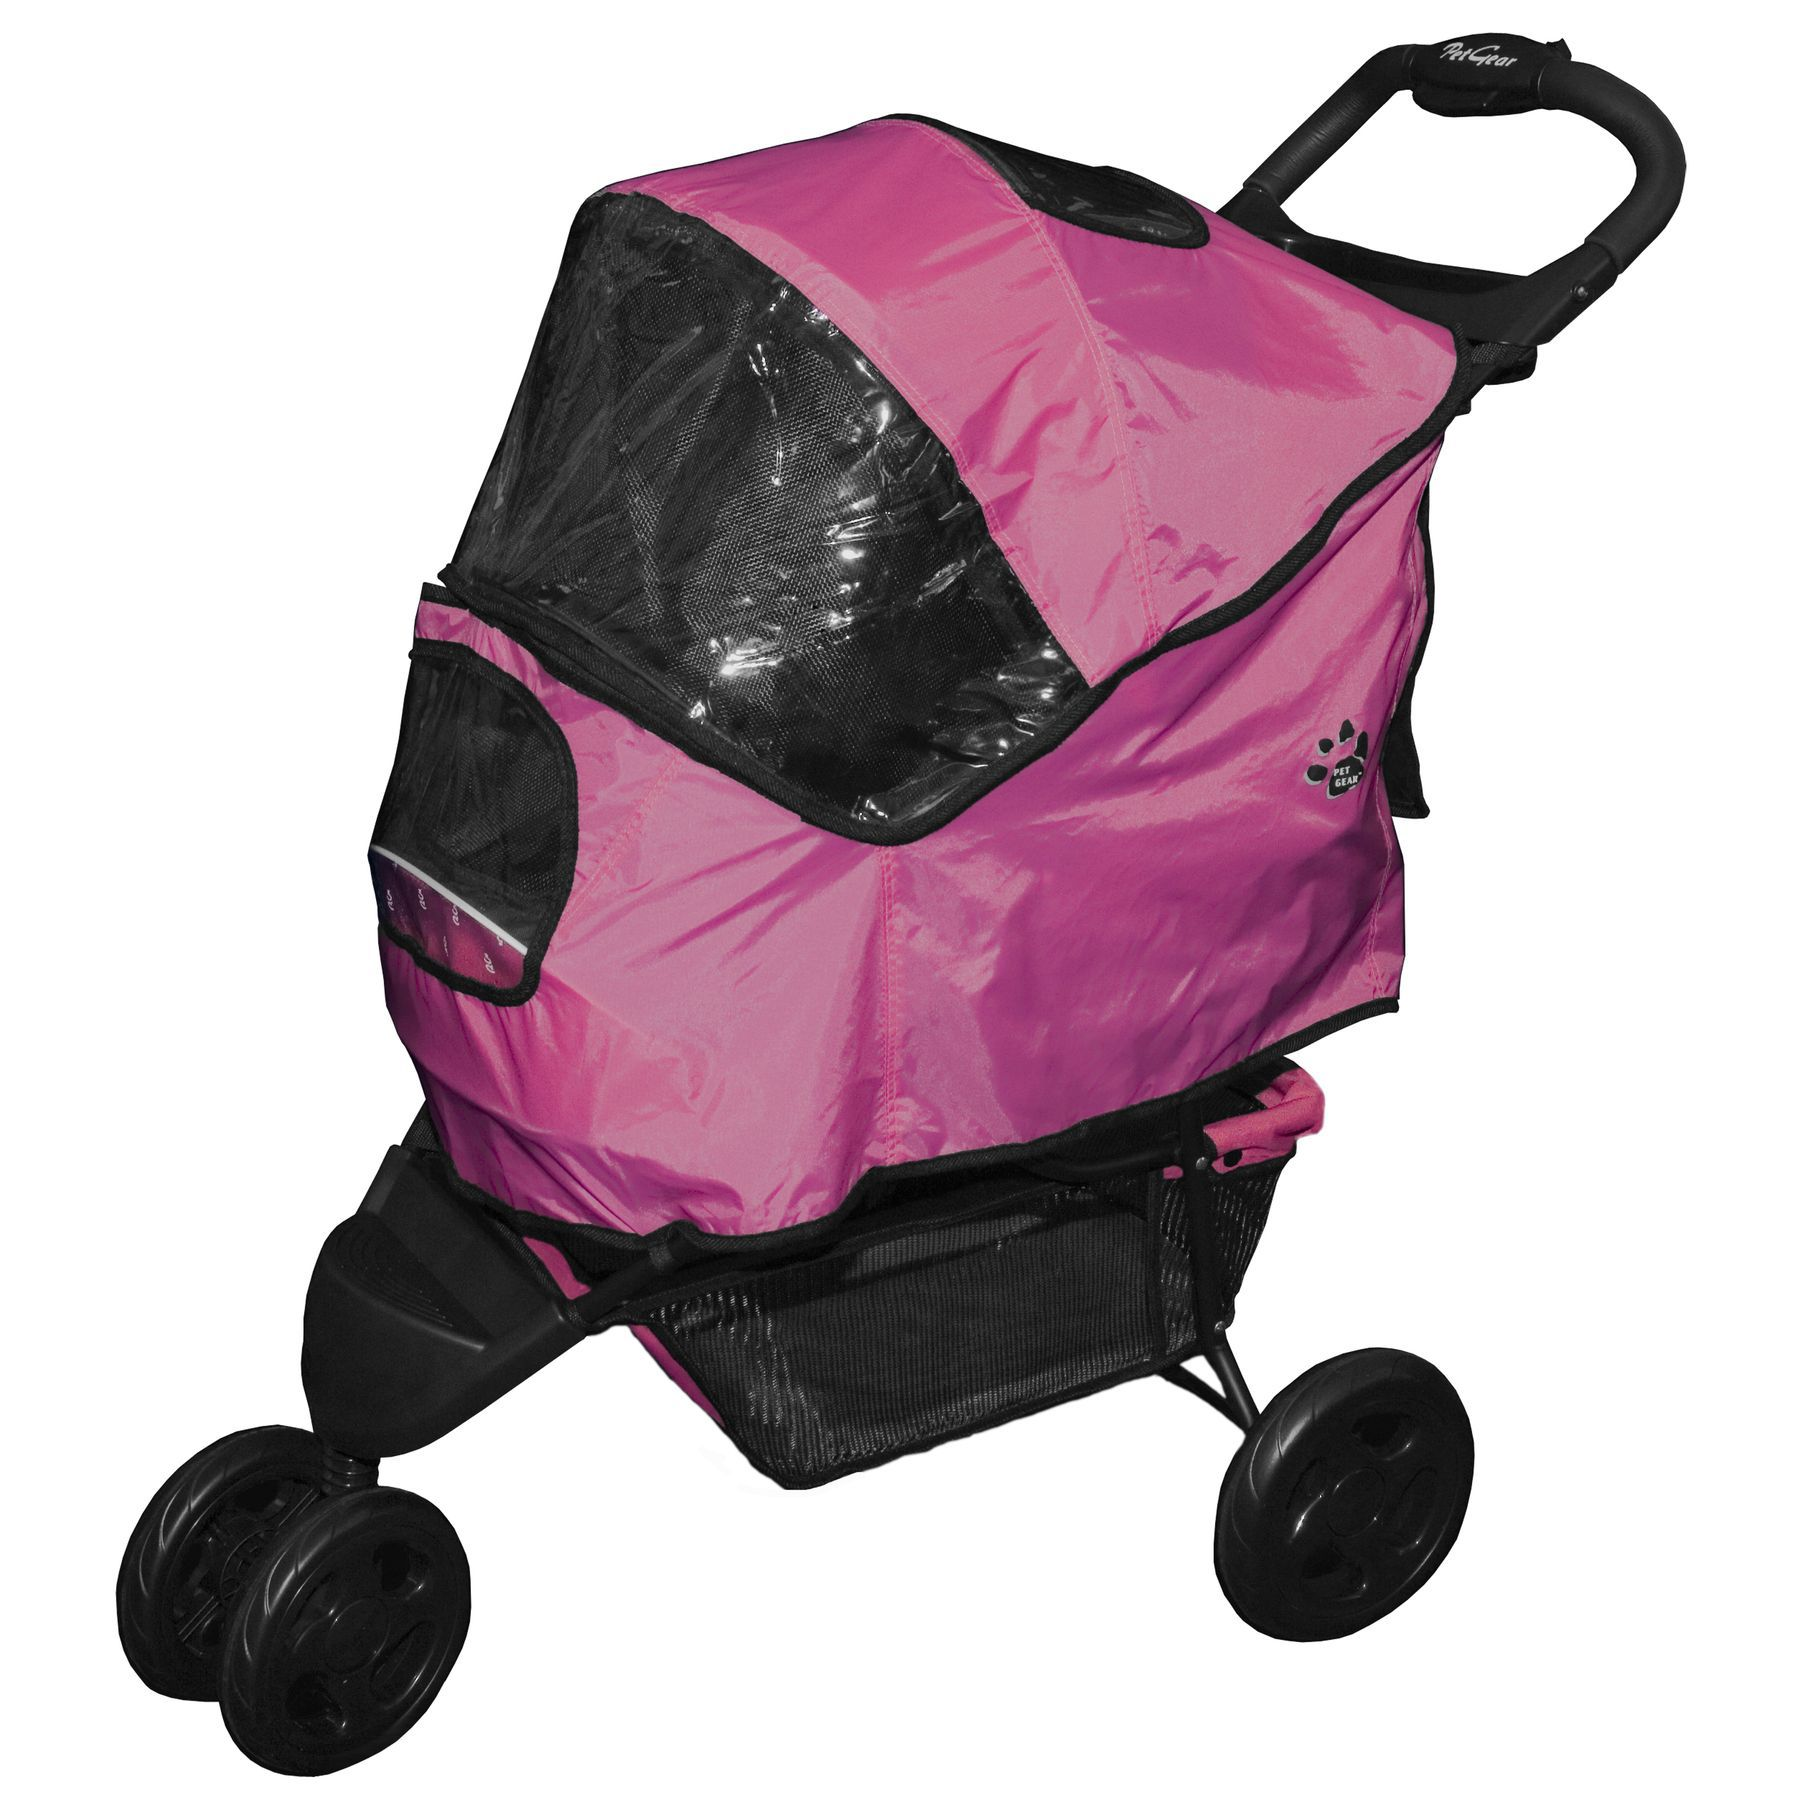 Weather Cover for Pet Gear Special Edition pet stroller